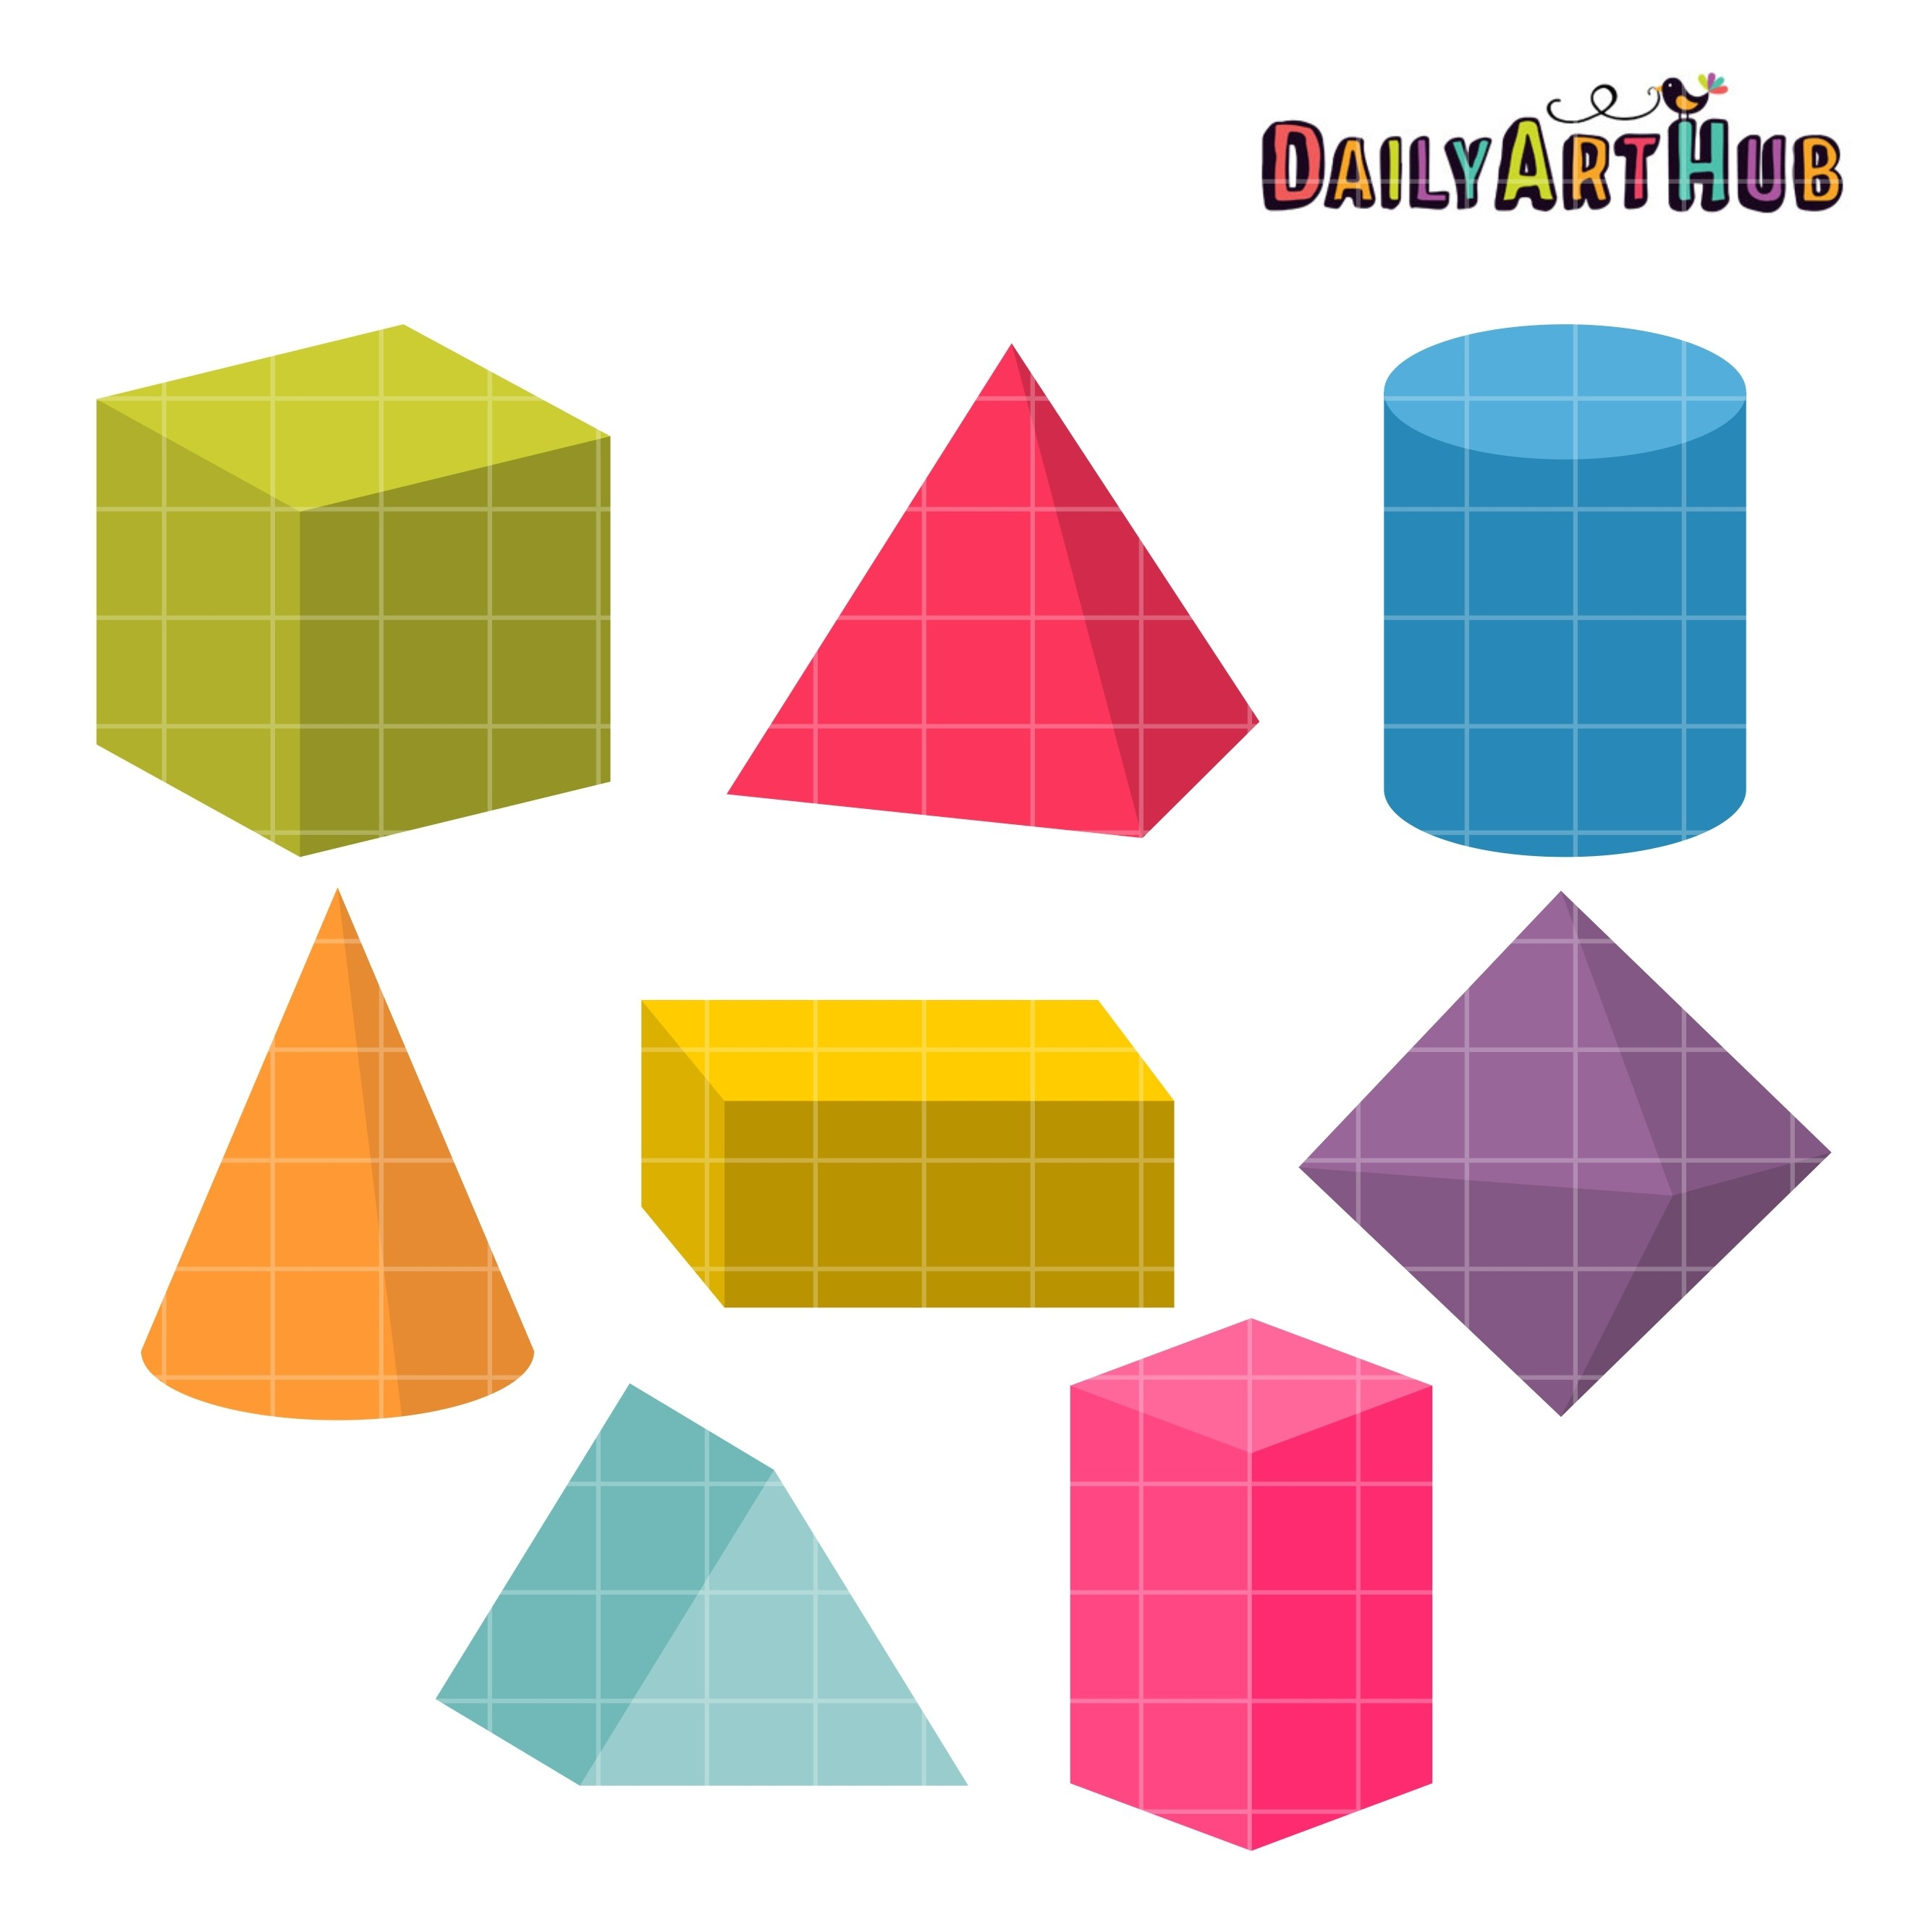 3D Shapes Clip Art Set – Daily Art Hub – Free Clip Art Everyday inside 3D Shapes Clip Art 19543